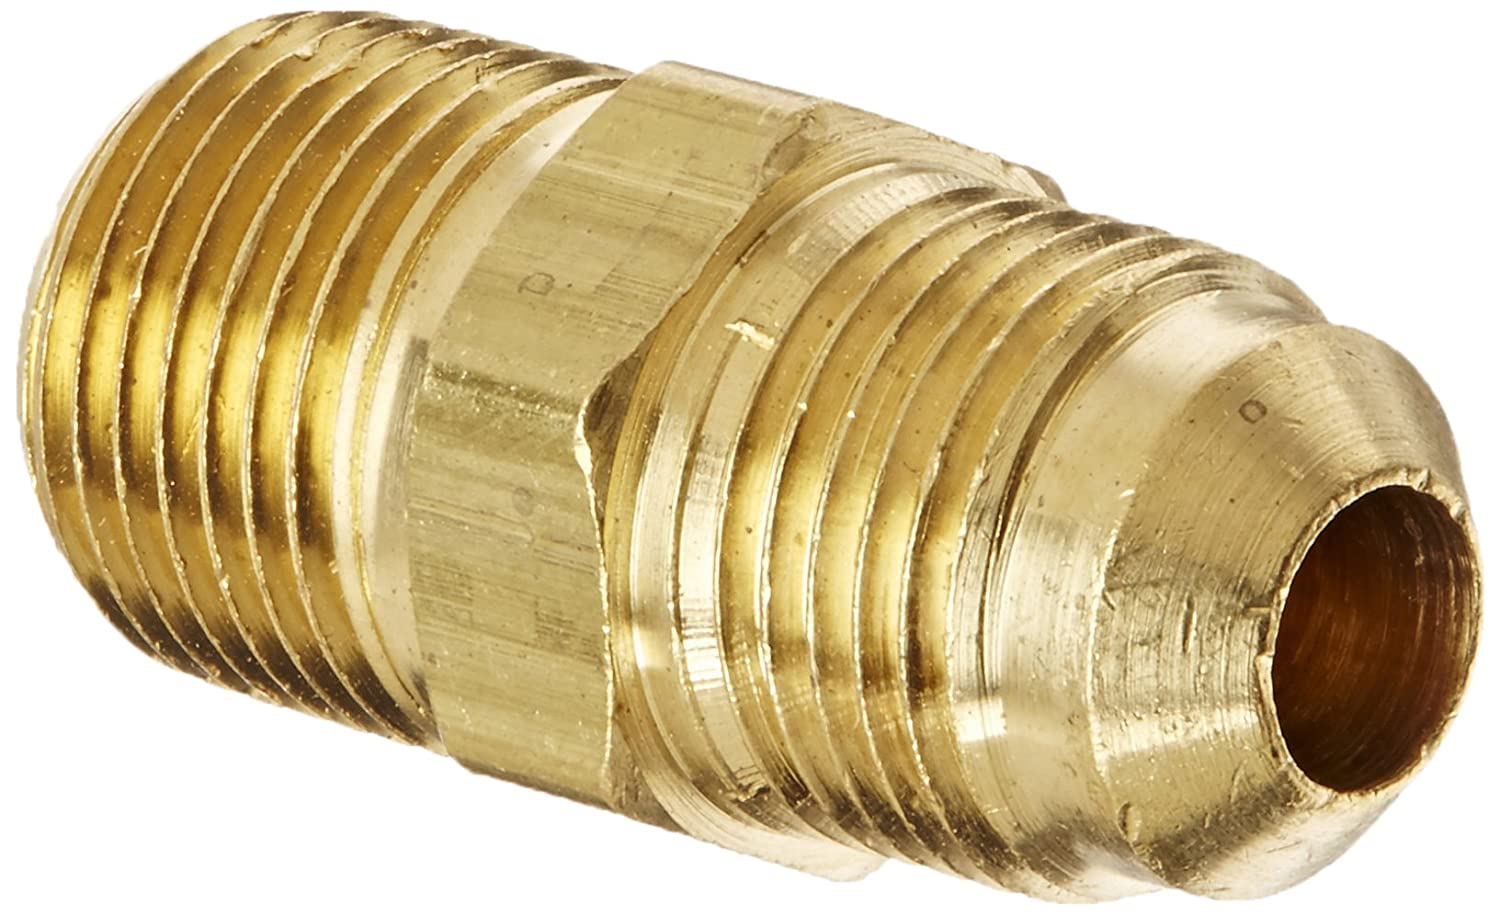 Adapter Pack of 5 Pack of 5 3//8 NPT Male x 3//8 SAE Male Eaton Products 3//8 NPT Male x 3//8 SAE Male Eaton Weatherhead 48X6X6 Brass CA360 SAE 45 Degree Flare